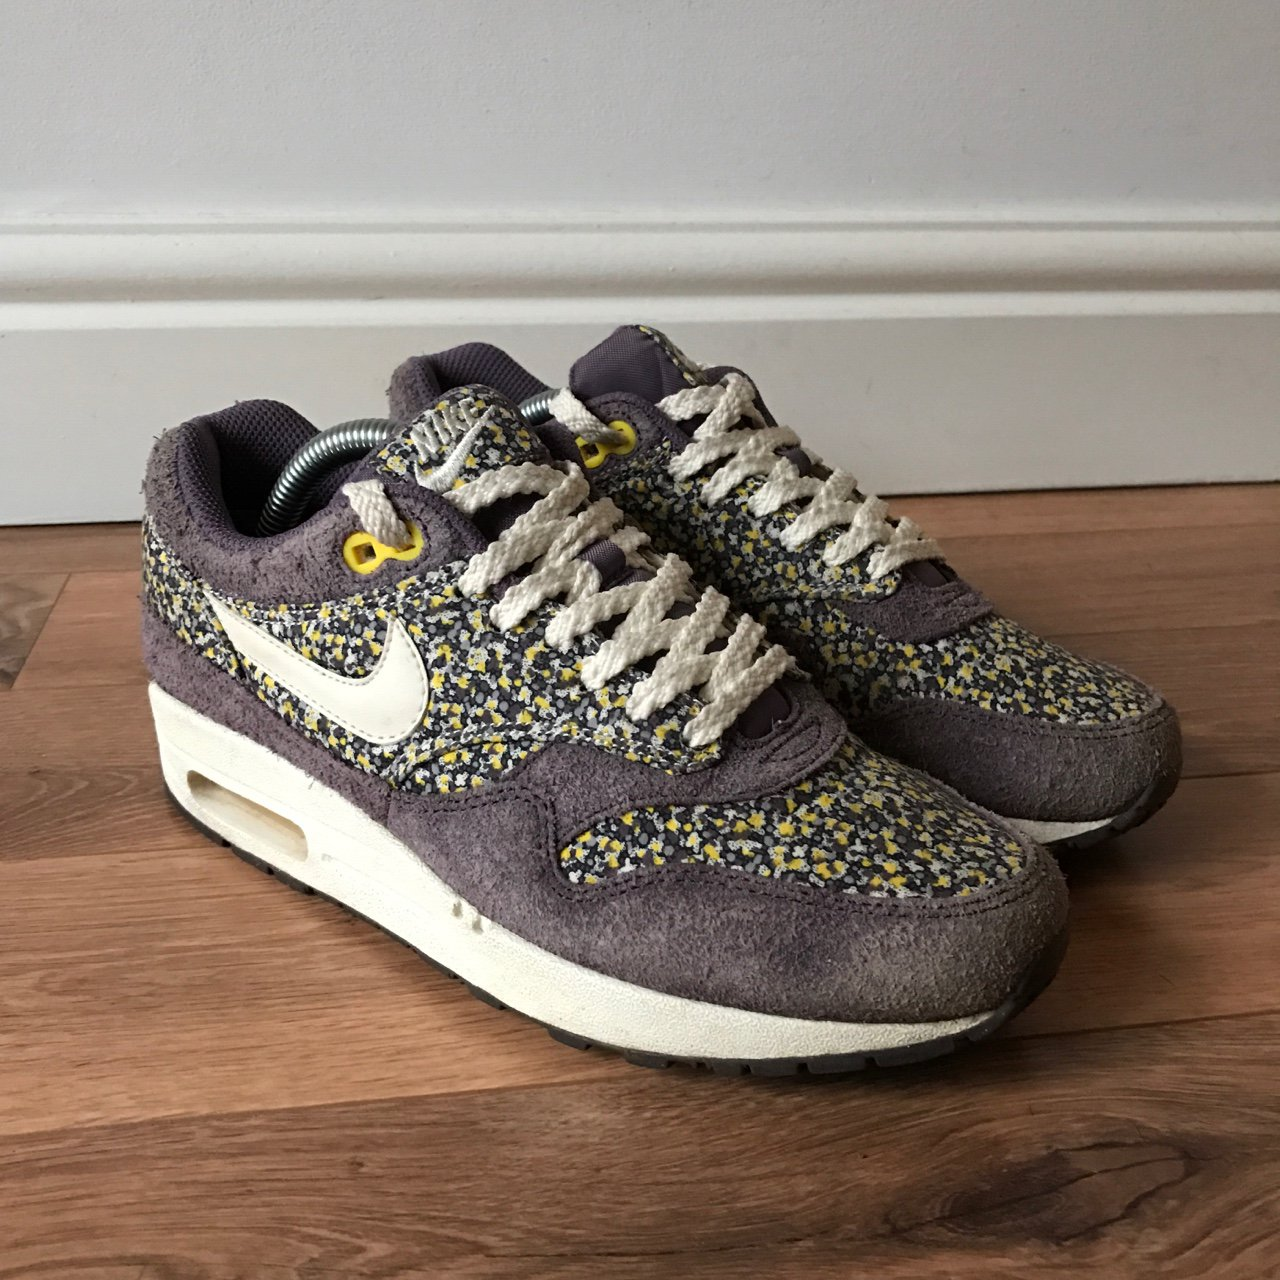 Genuine Nike air max liberty Slight small mark on as shown - Depop 489c4db38f5f